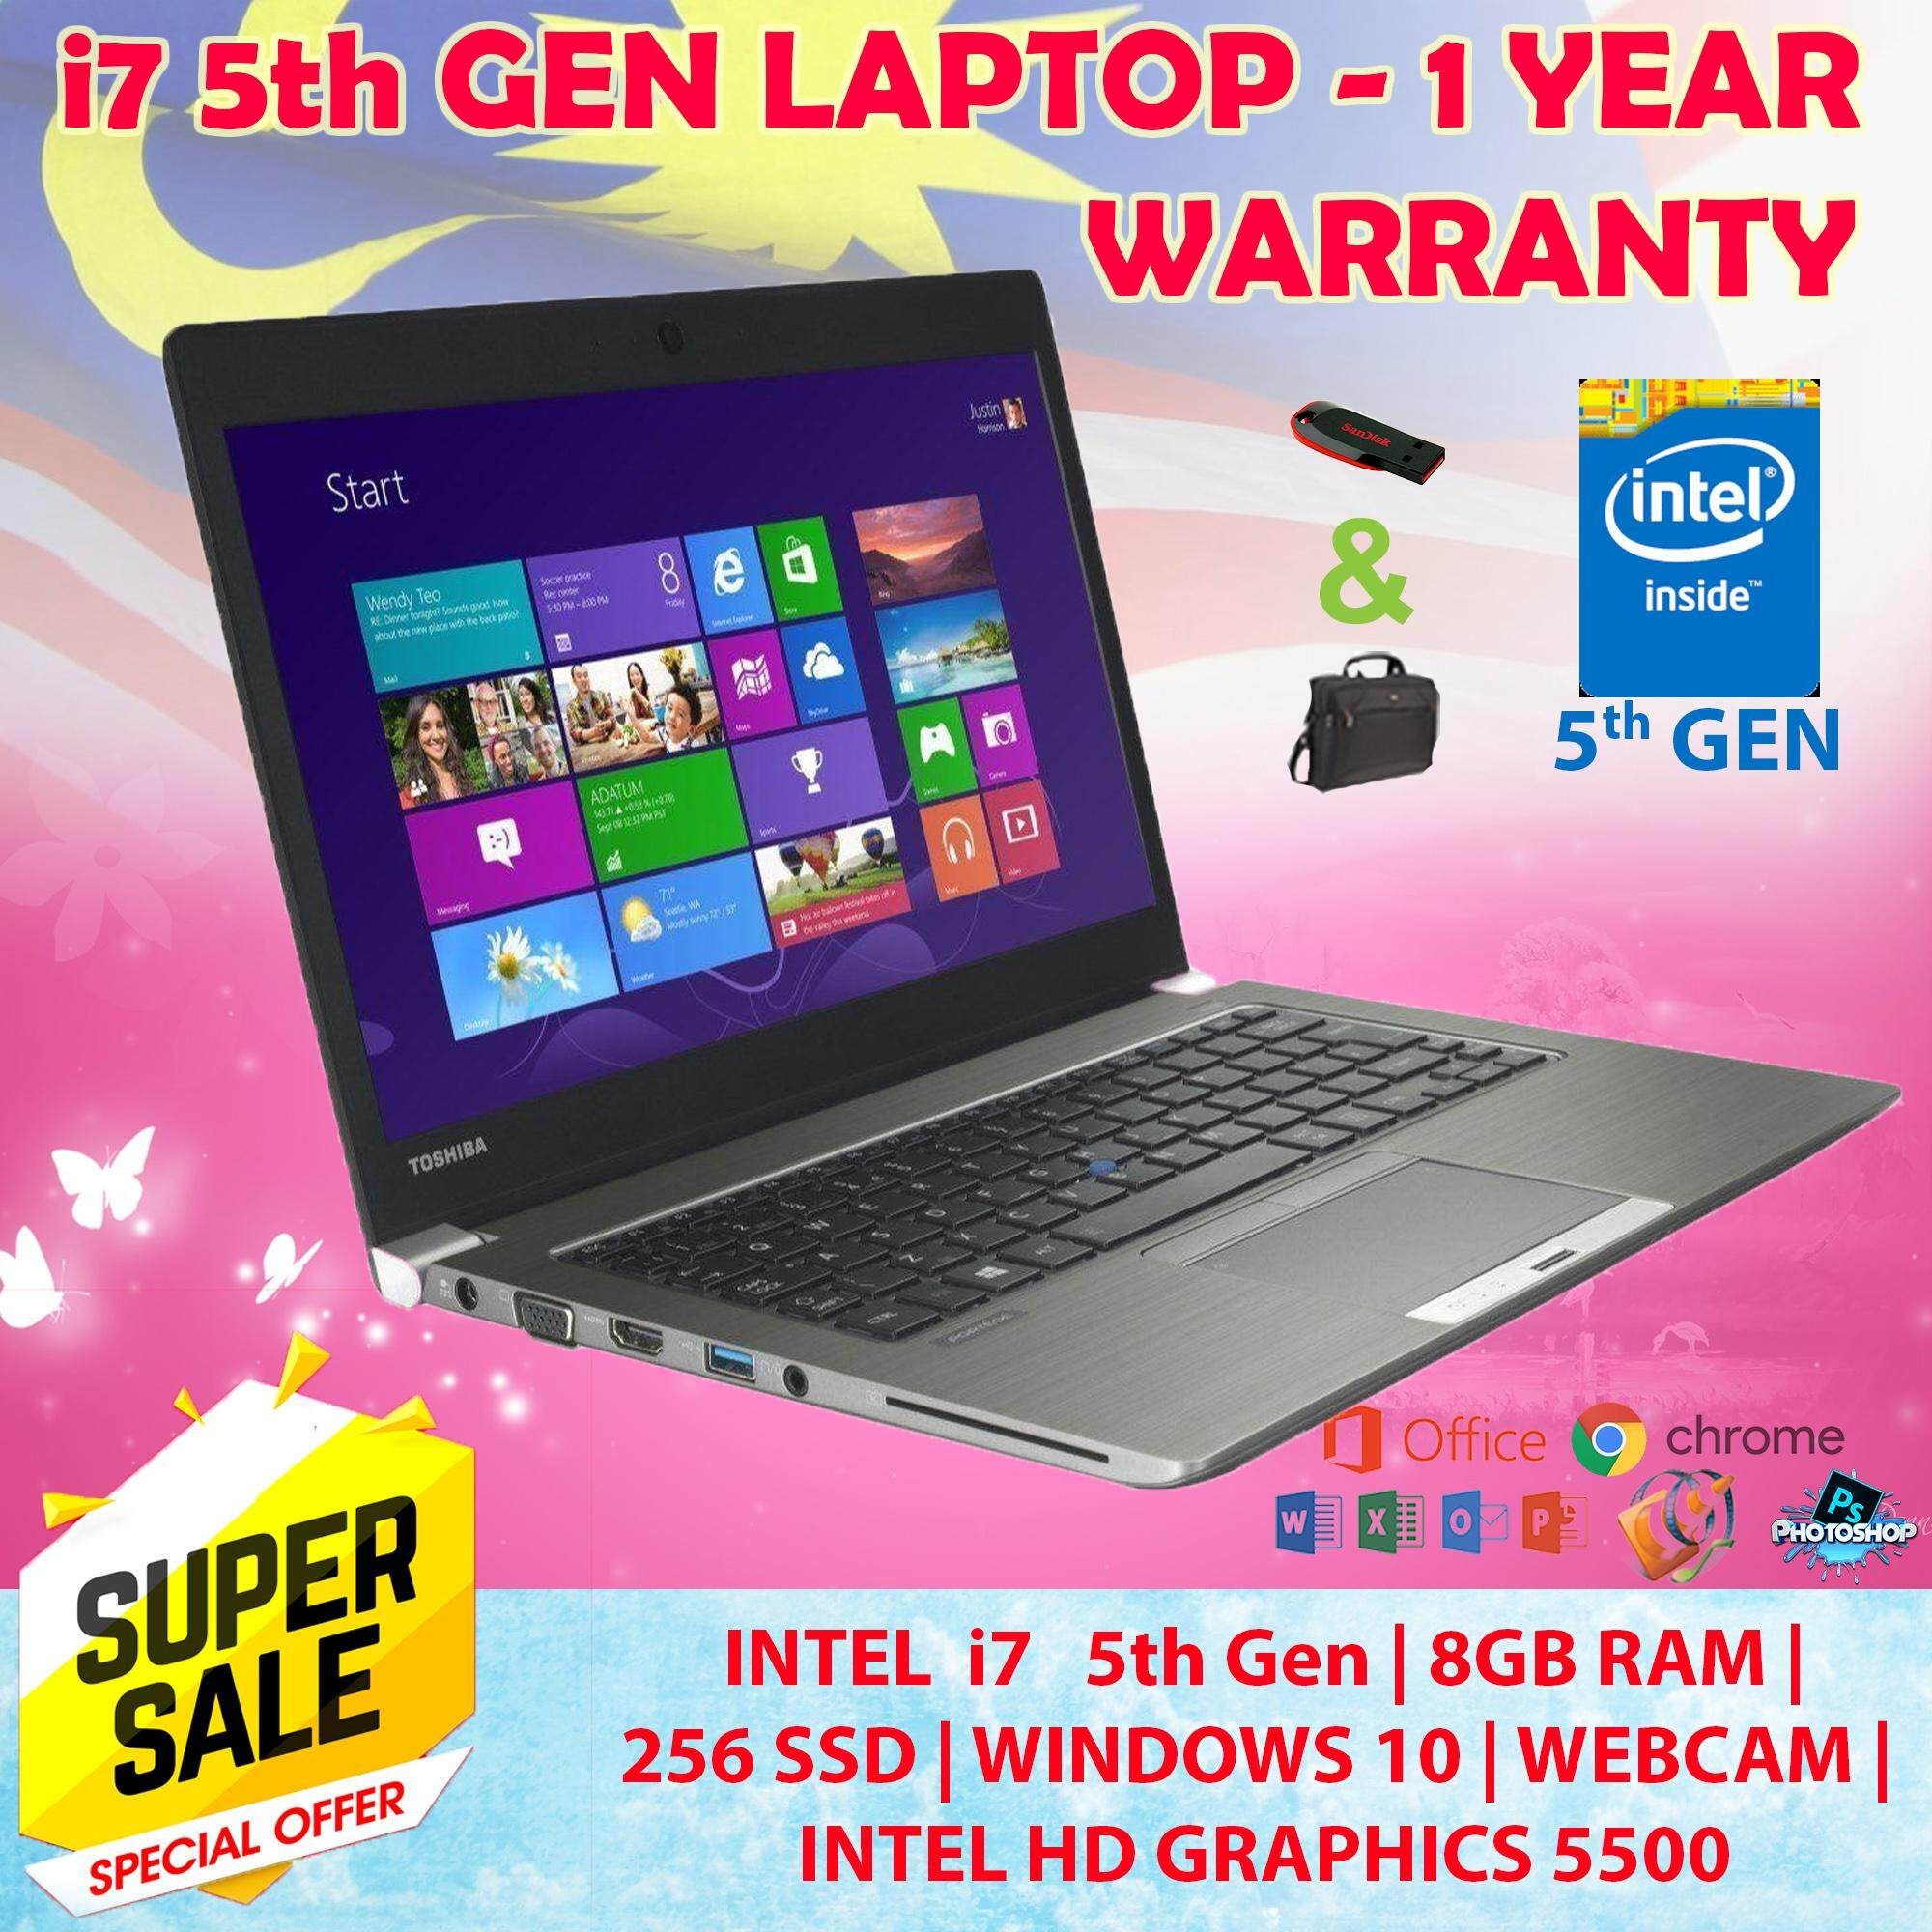 Toshiba UltraBook PORTEGE Z30- CORE I7-5th Gen Laptop 8GB RAM 256GB SSD Webcam , 1 Year Warranty 100% Original Free 16GB Pendrive + Bag Malaysia